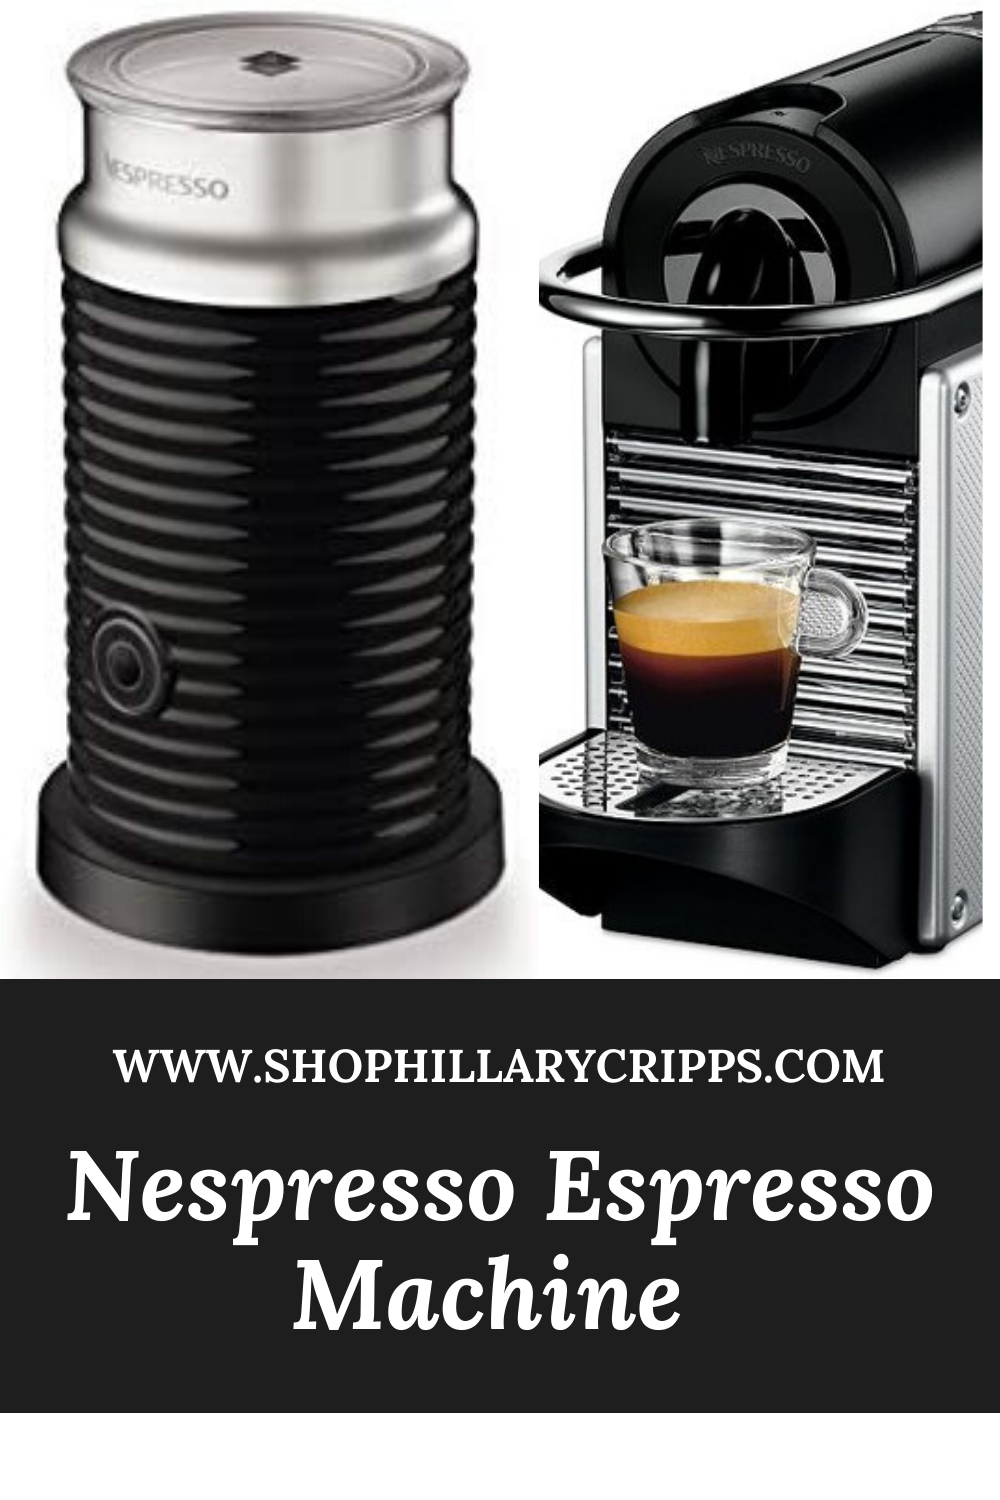 This espresso machine is the best! I use it everyday for